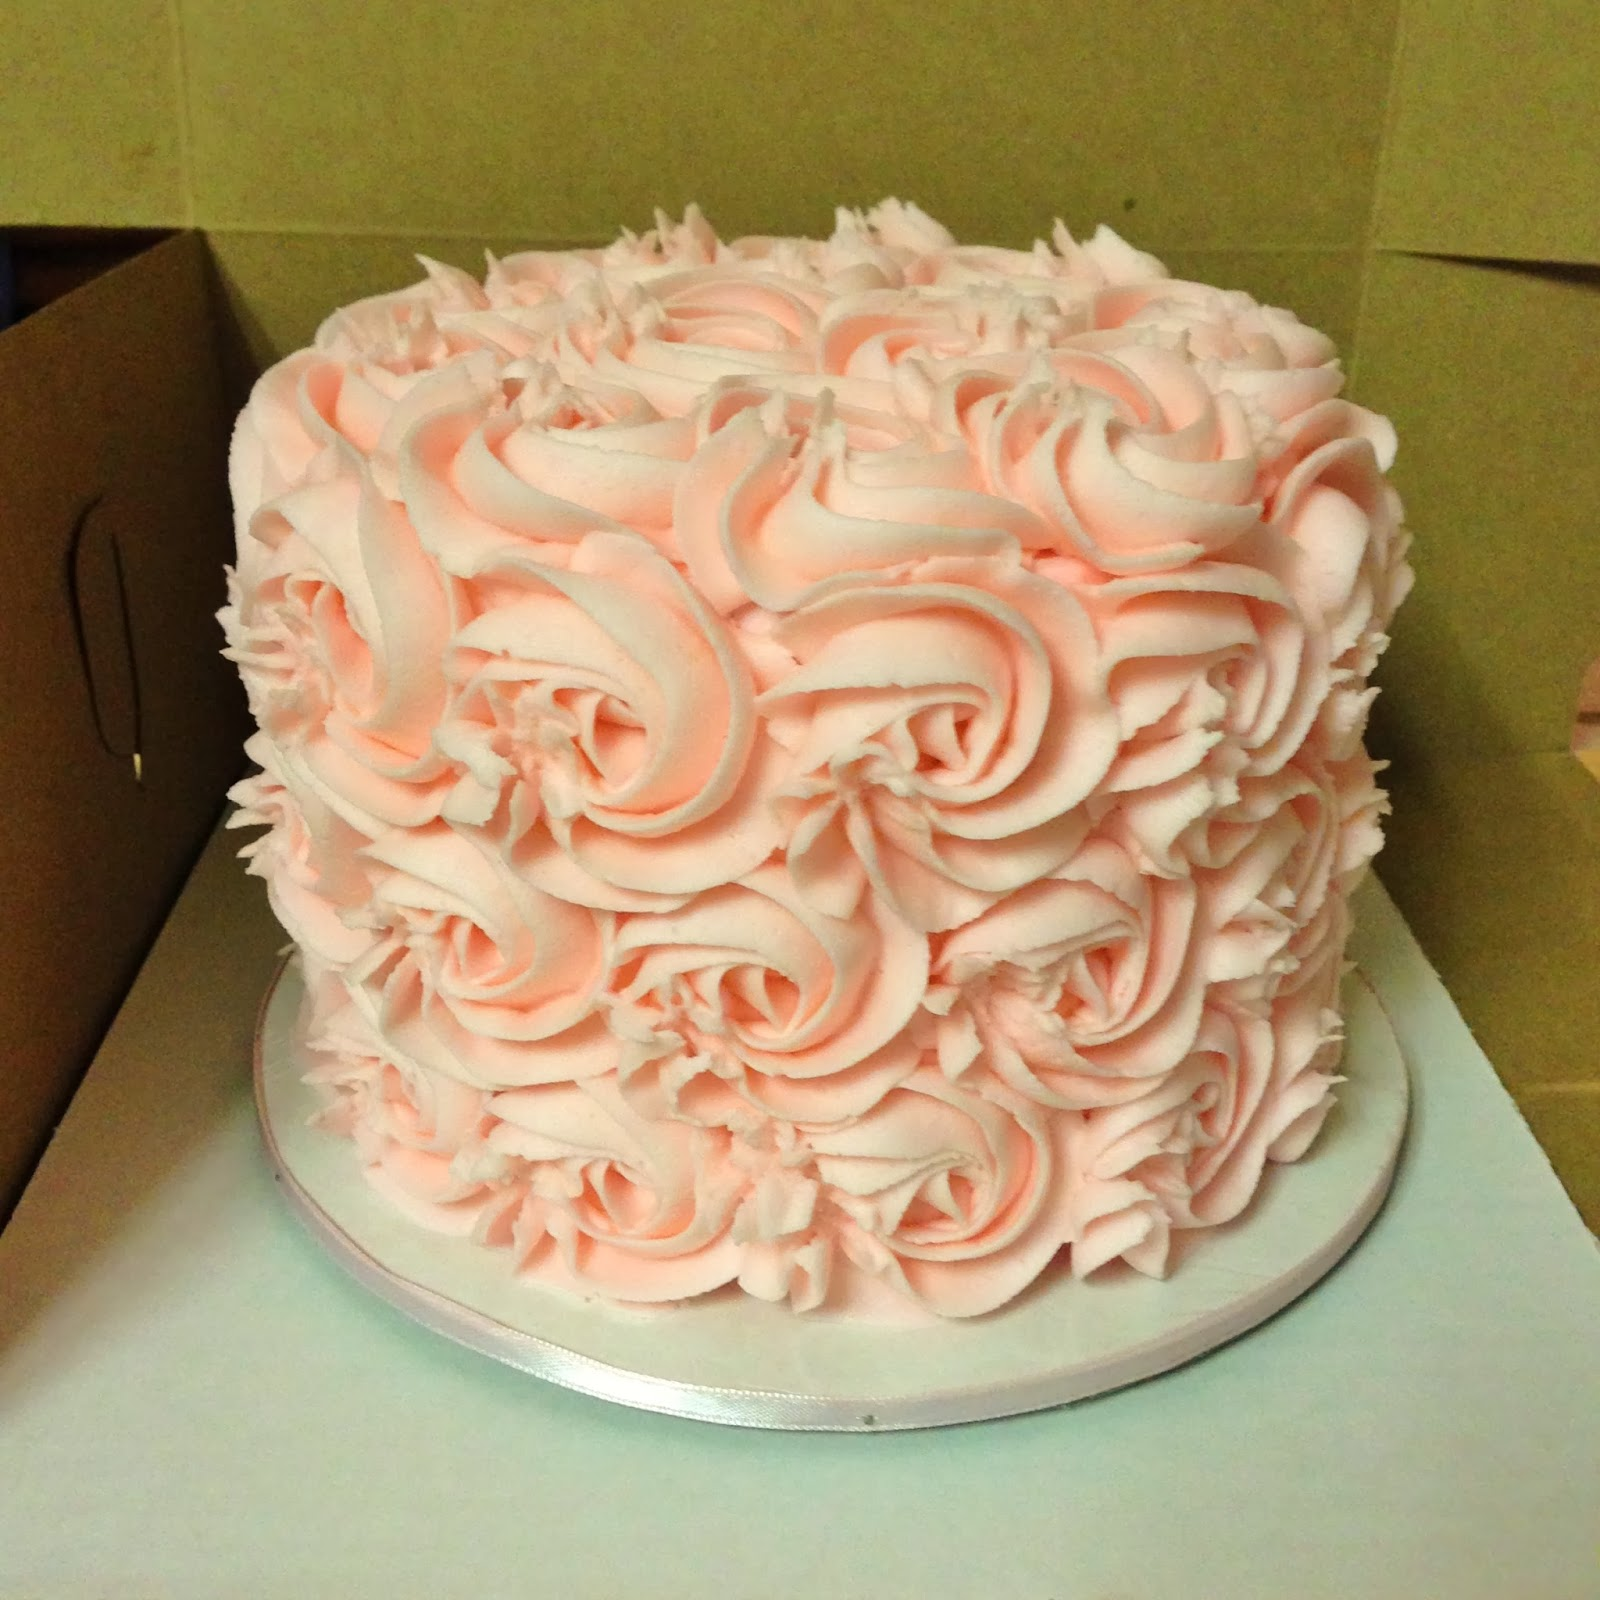 Pink Rosette Cake Images : Cakes by Mindy: Pale Pink Rosette Cake 6